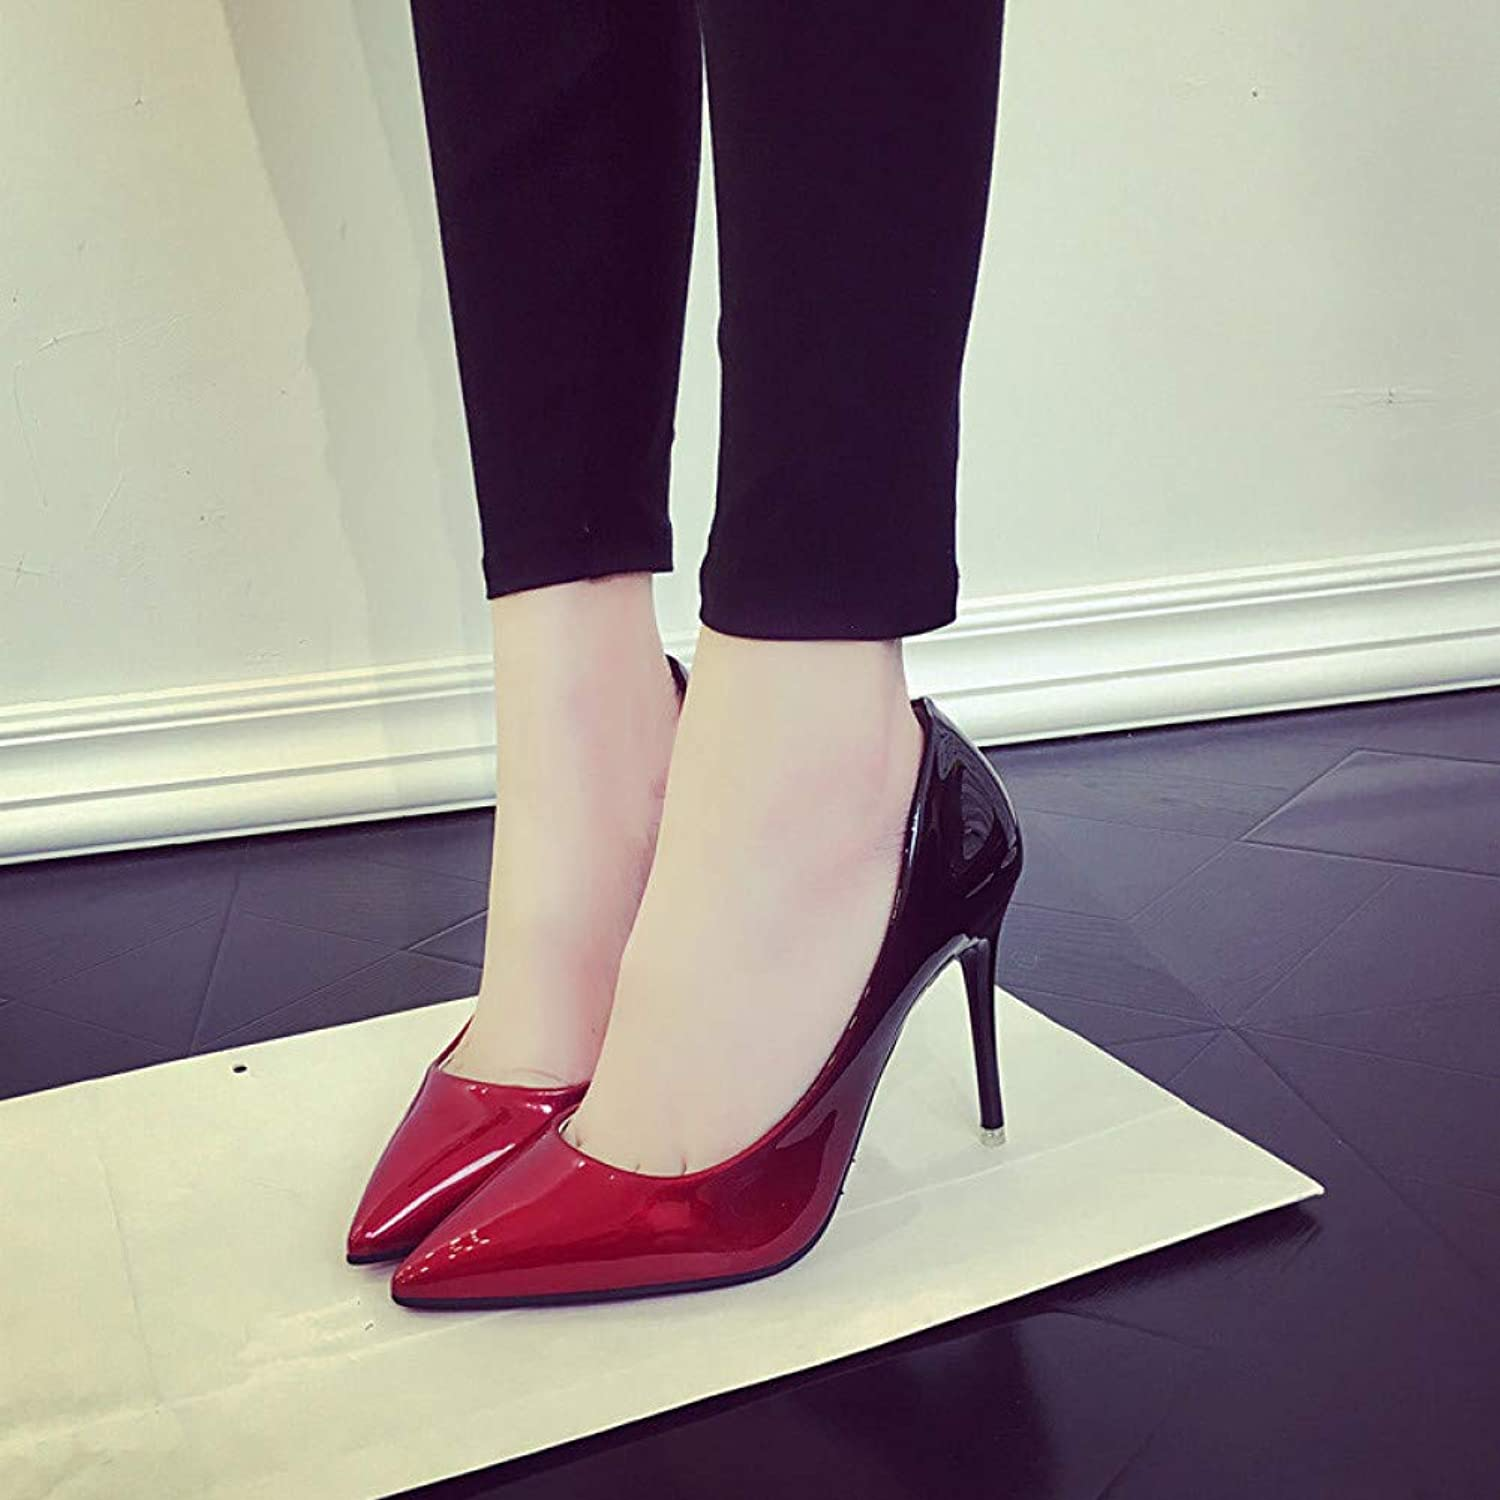 UKJSNHH igh Heels Women shoes Pointed Toe Pumps Patent Leather Dress Wine Red 8CM High Heels Boat shoes Wedding shoes